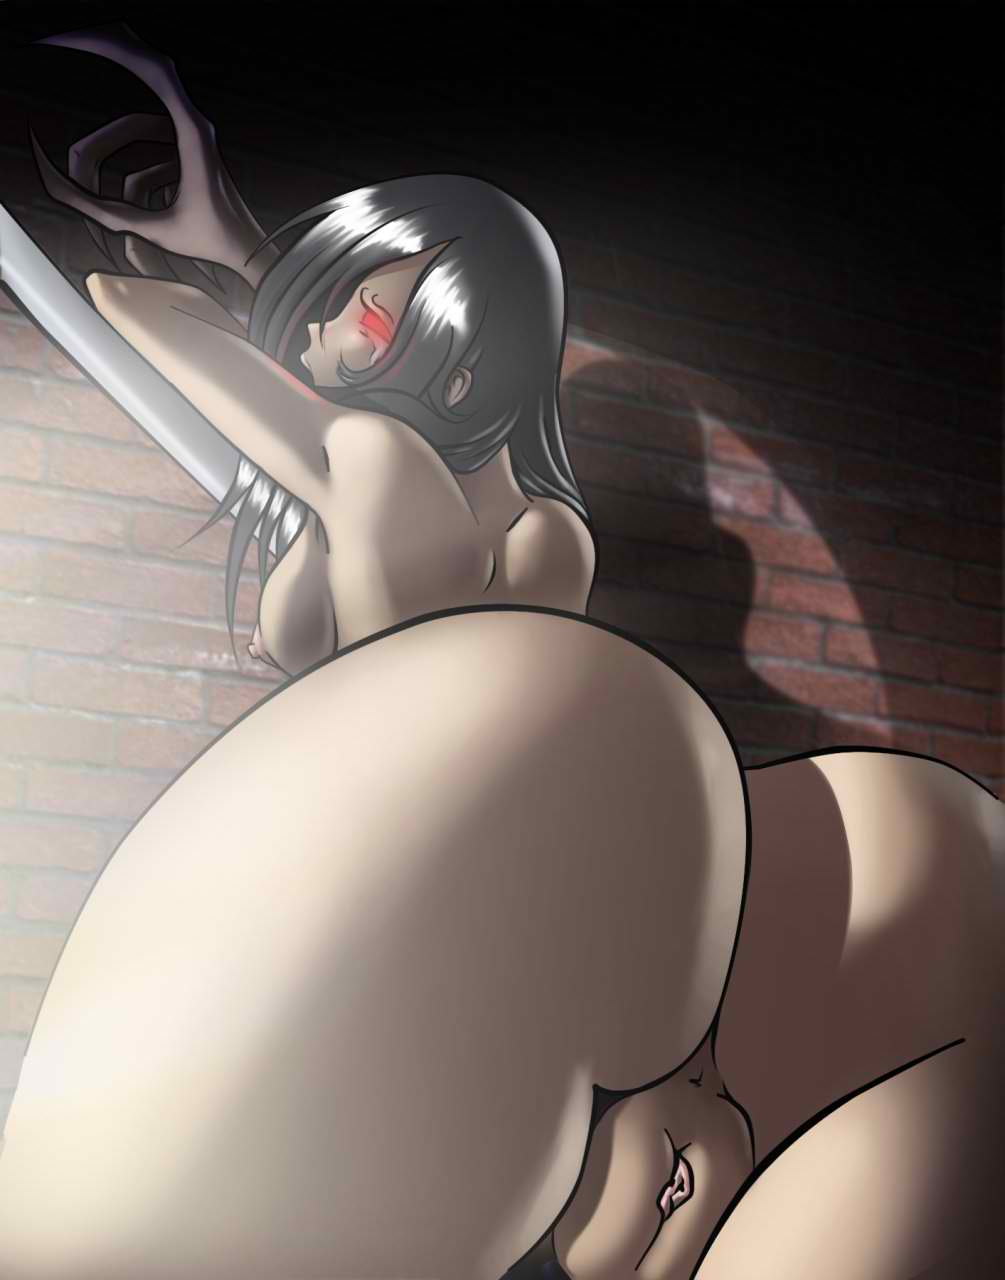 Hot sexy kinky hentai witches pics sexy comic